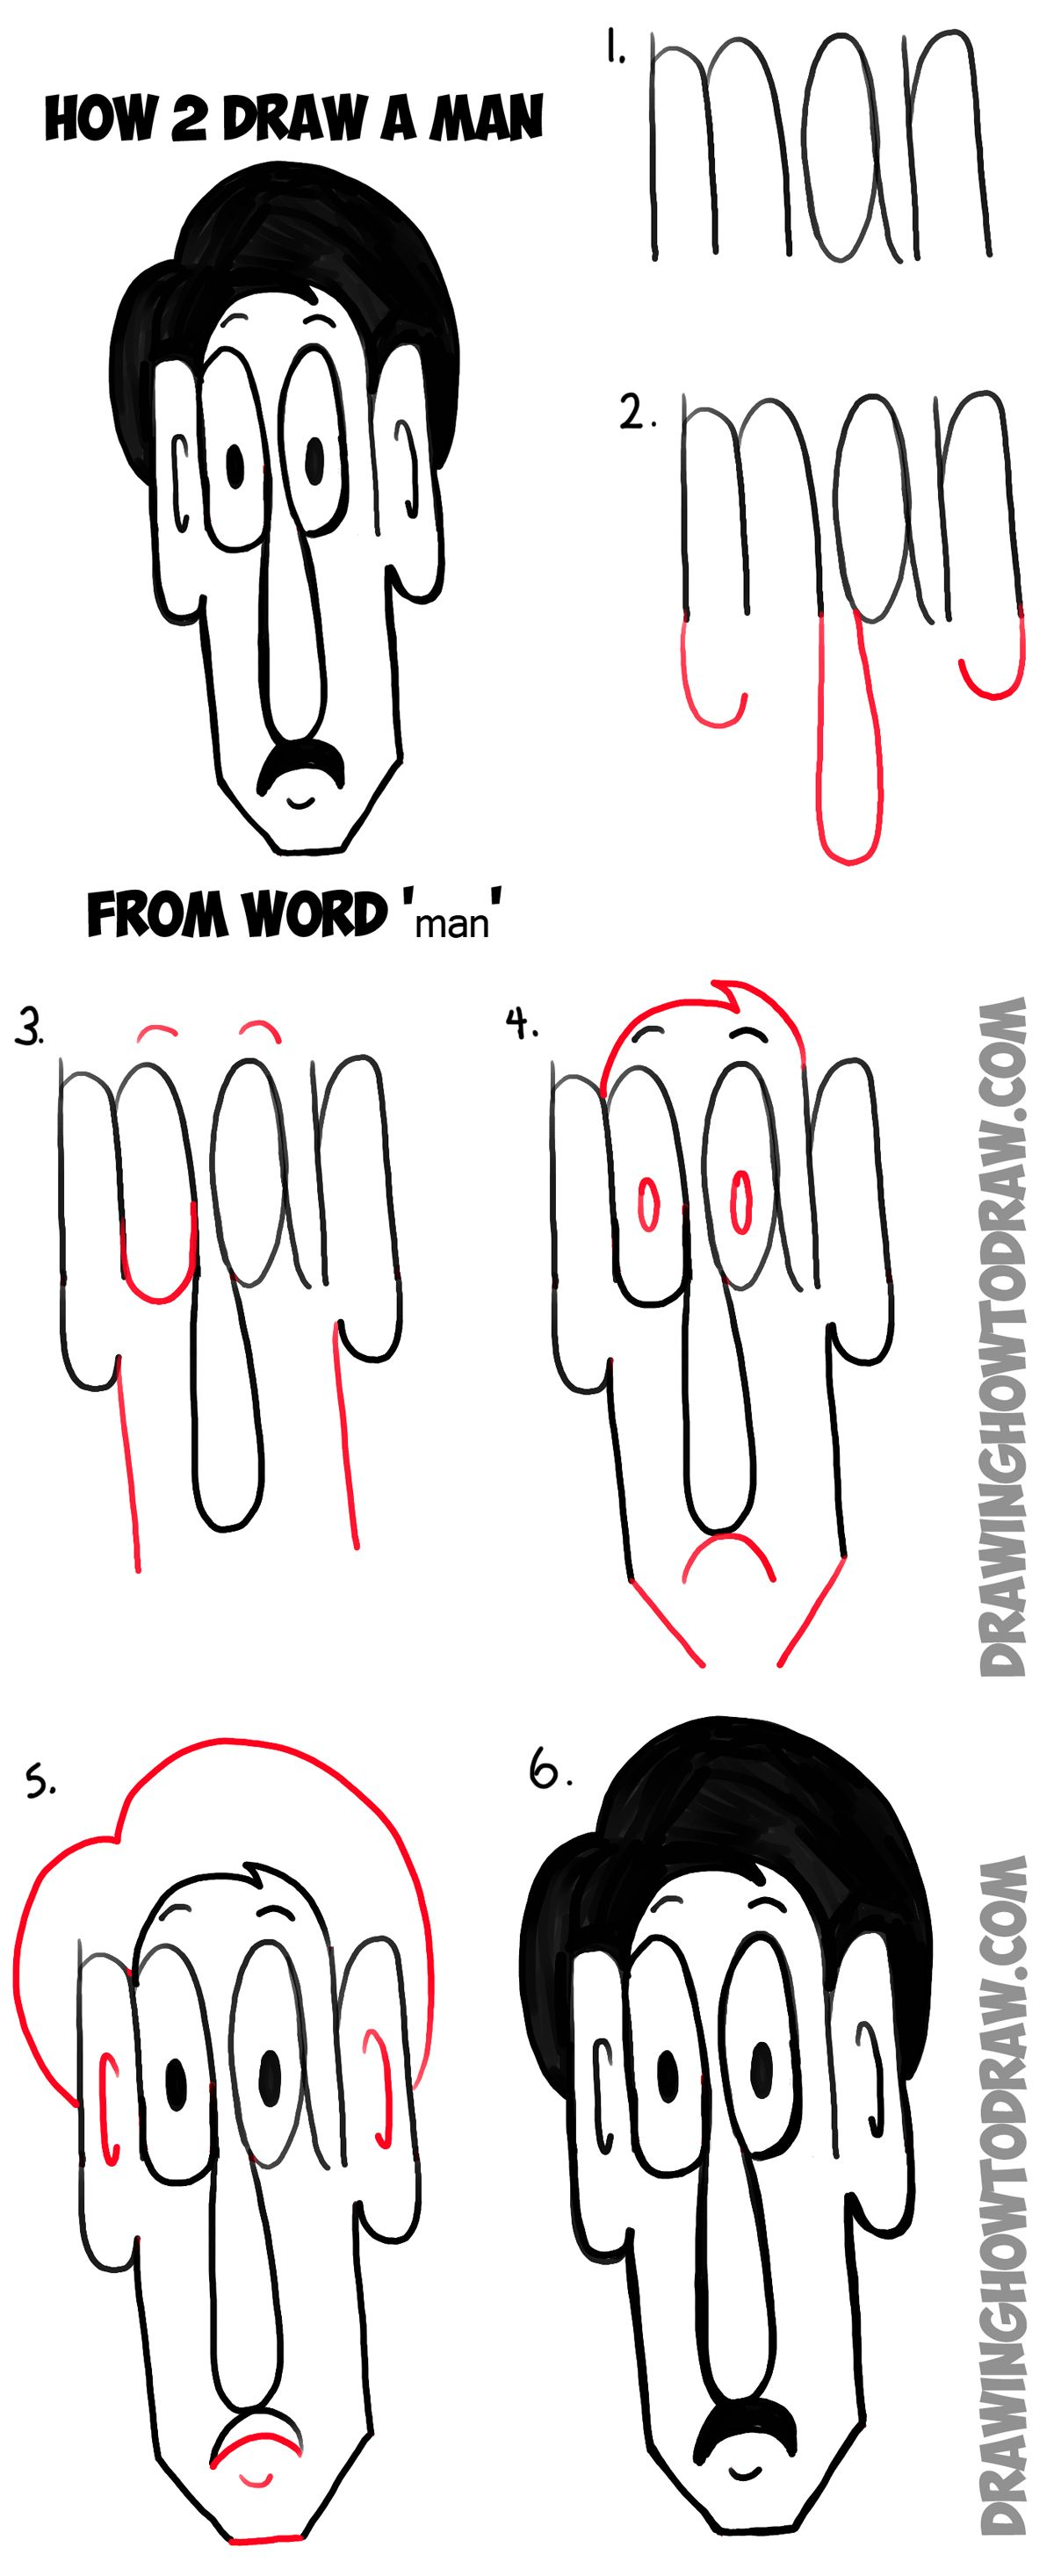 How To Draw Cartoon Man From The Word Simple Step By Drawing Tutorial For Kids Cool Crafts Men